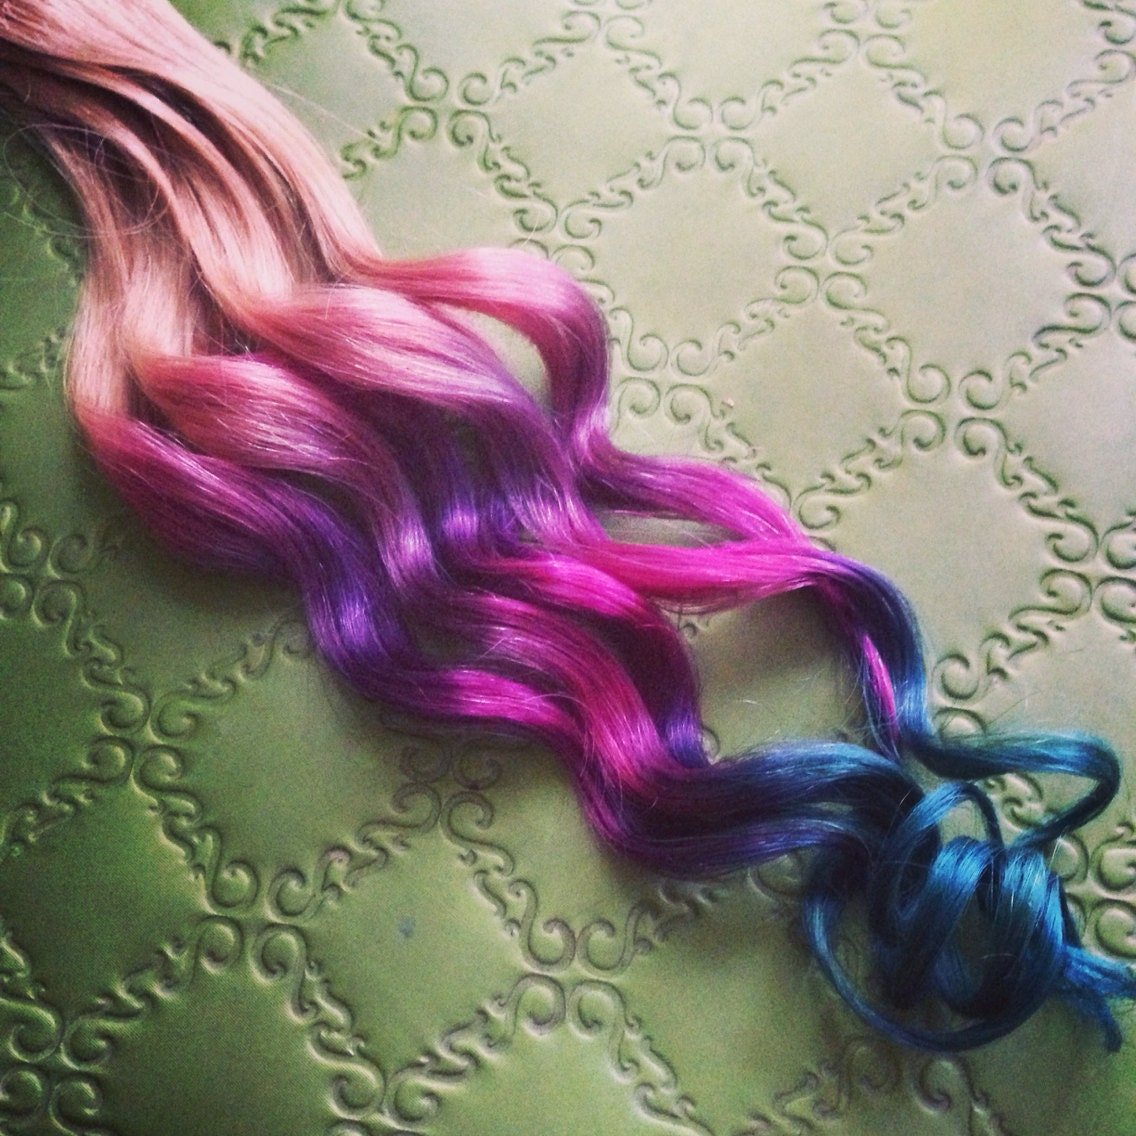 Handmade Ombre Pastel Tie Dye Tips Human Hair Extensions